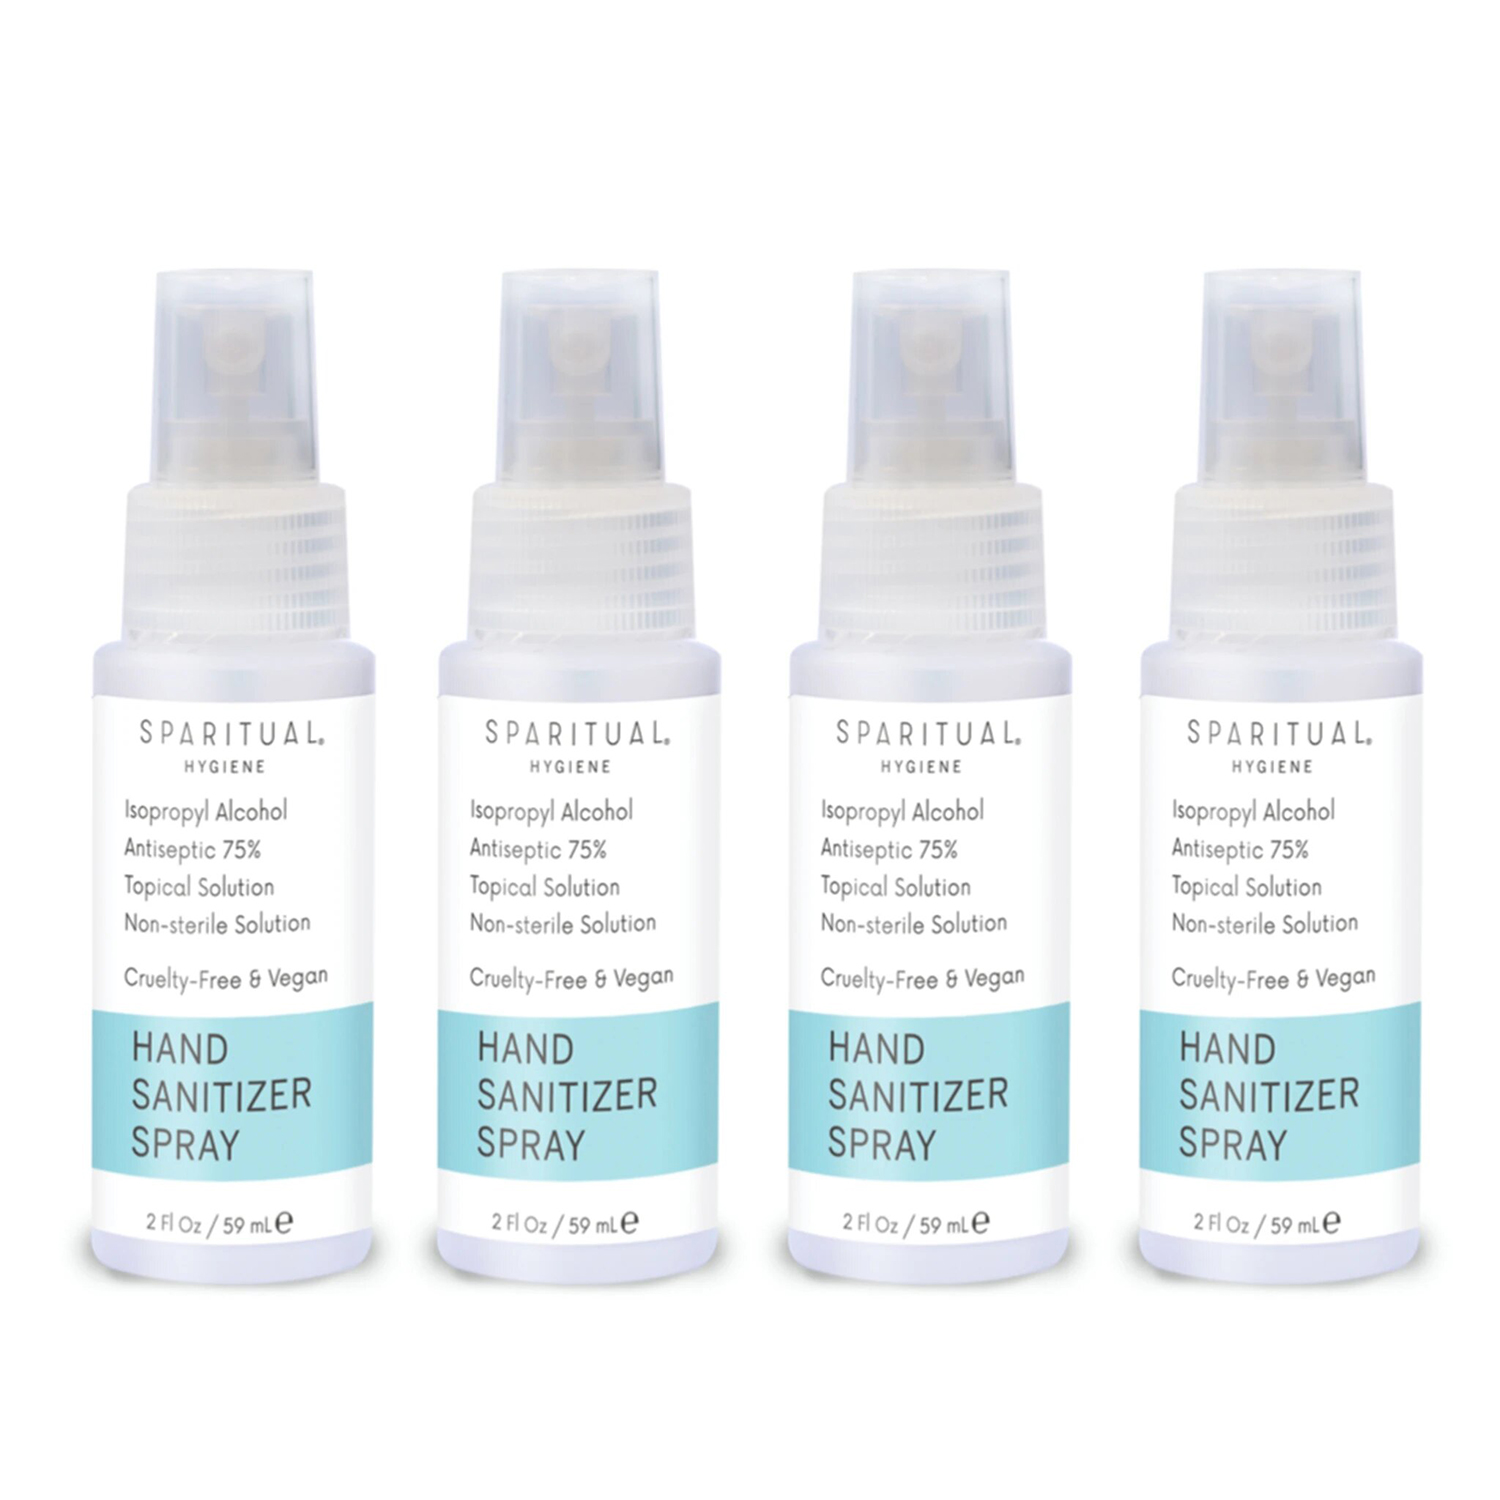 Hand Sanitizer Spray 4-pack